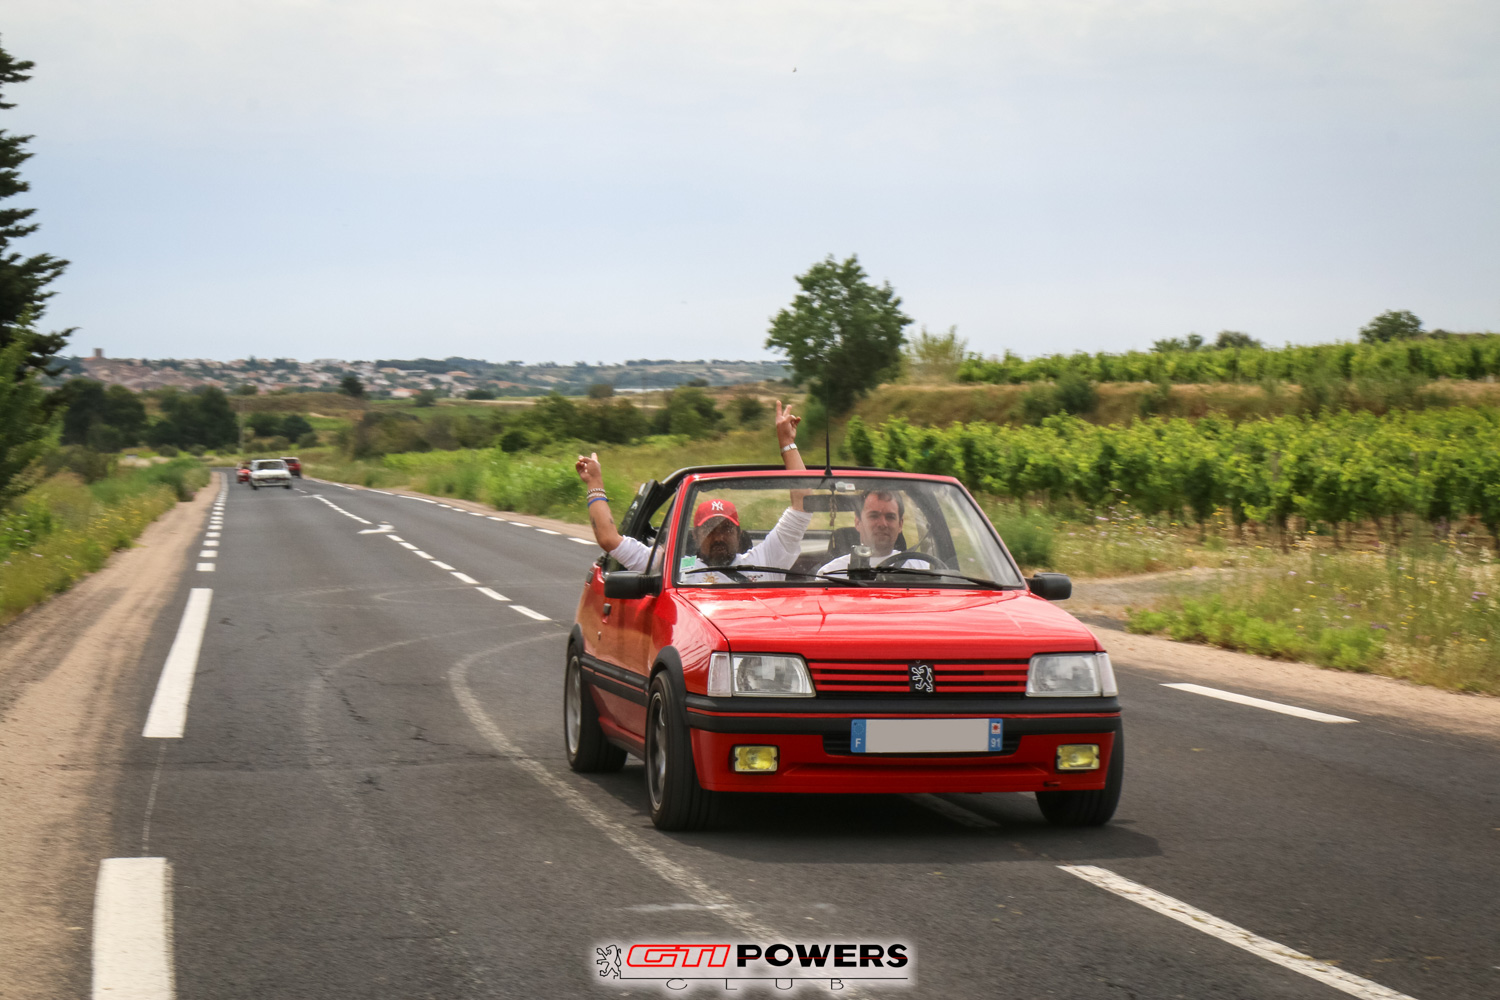 [GTIPOWERS DAYS] Nationale #4 - 8-9-10 Juin 2019 - Beziers - Page 8 Gtipow72